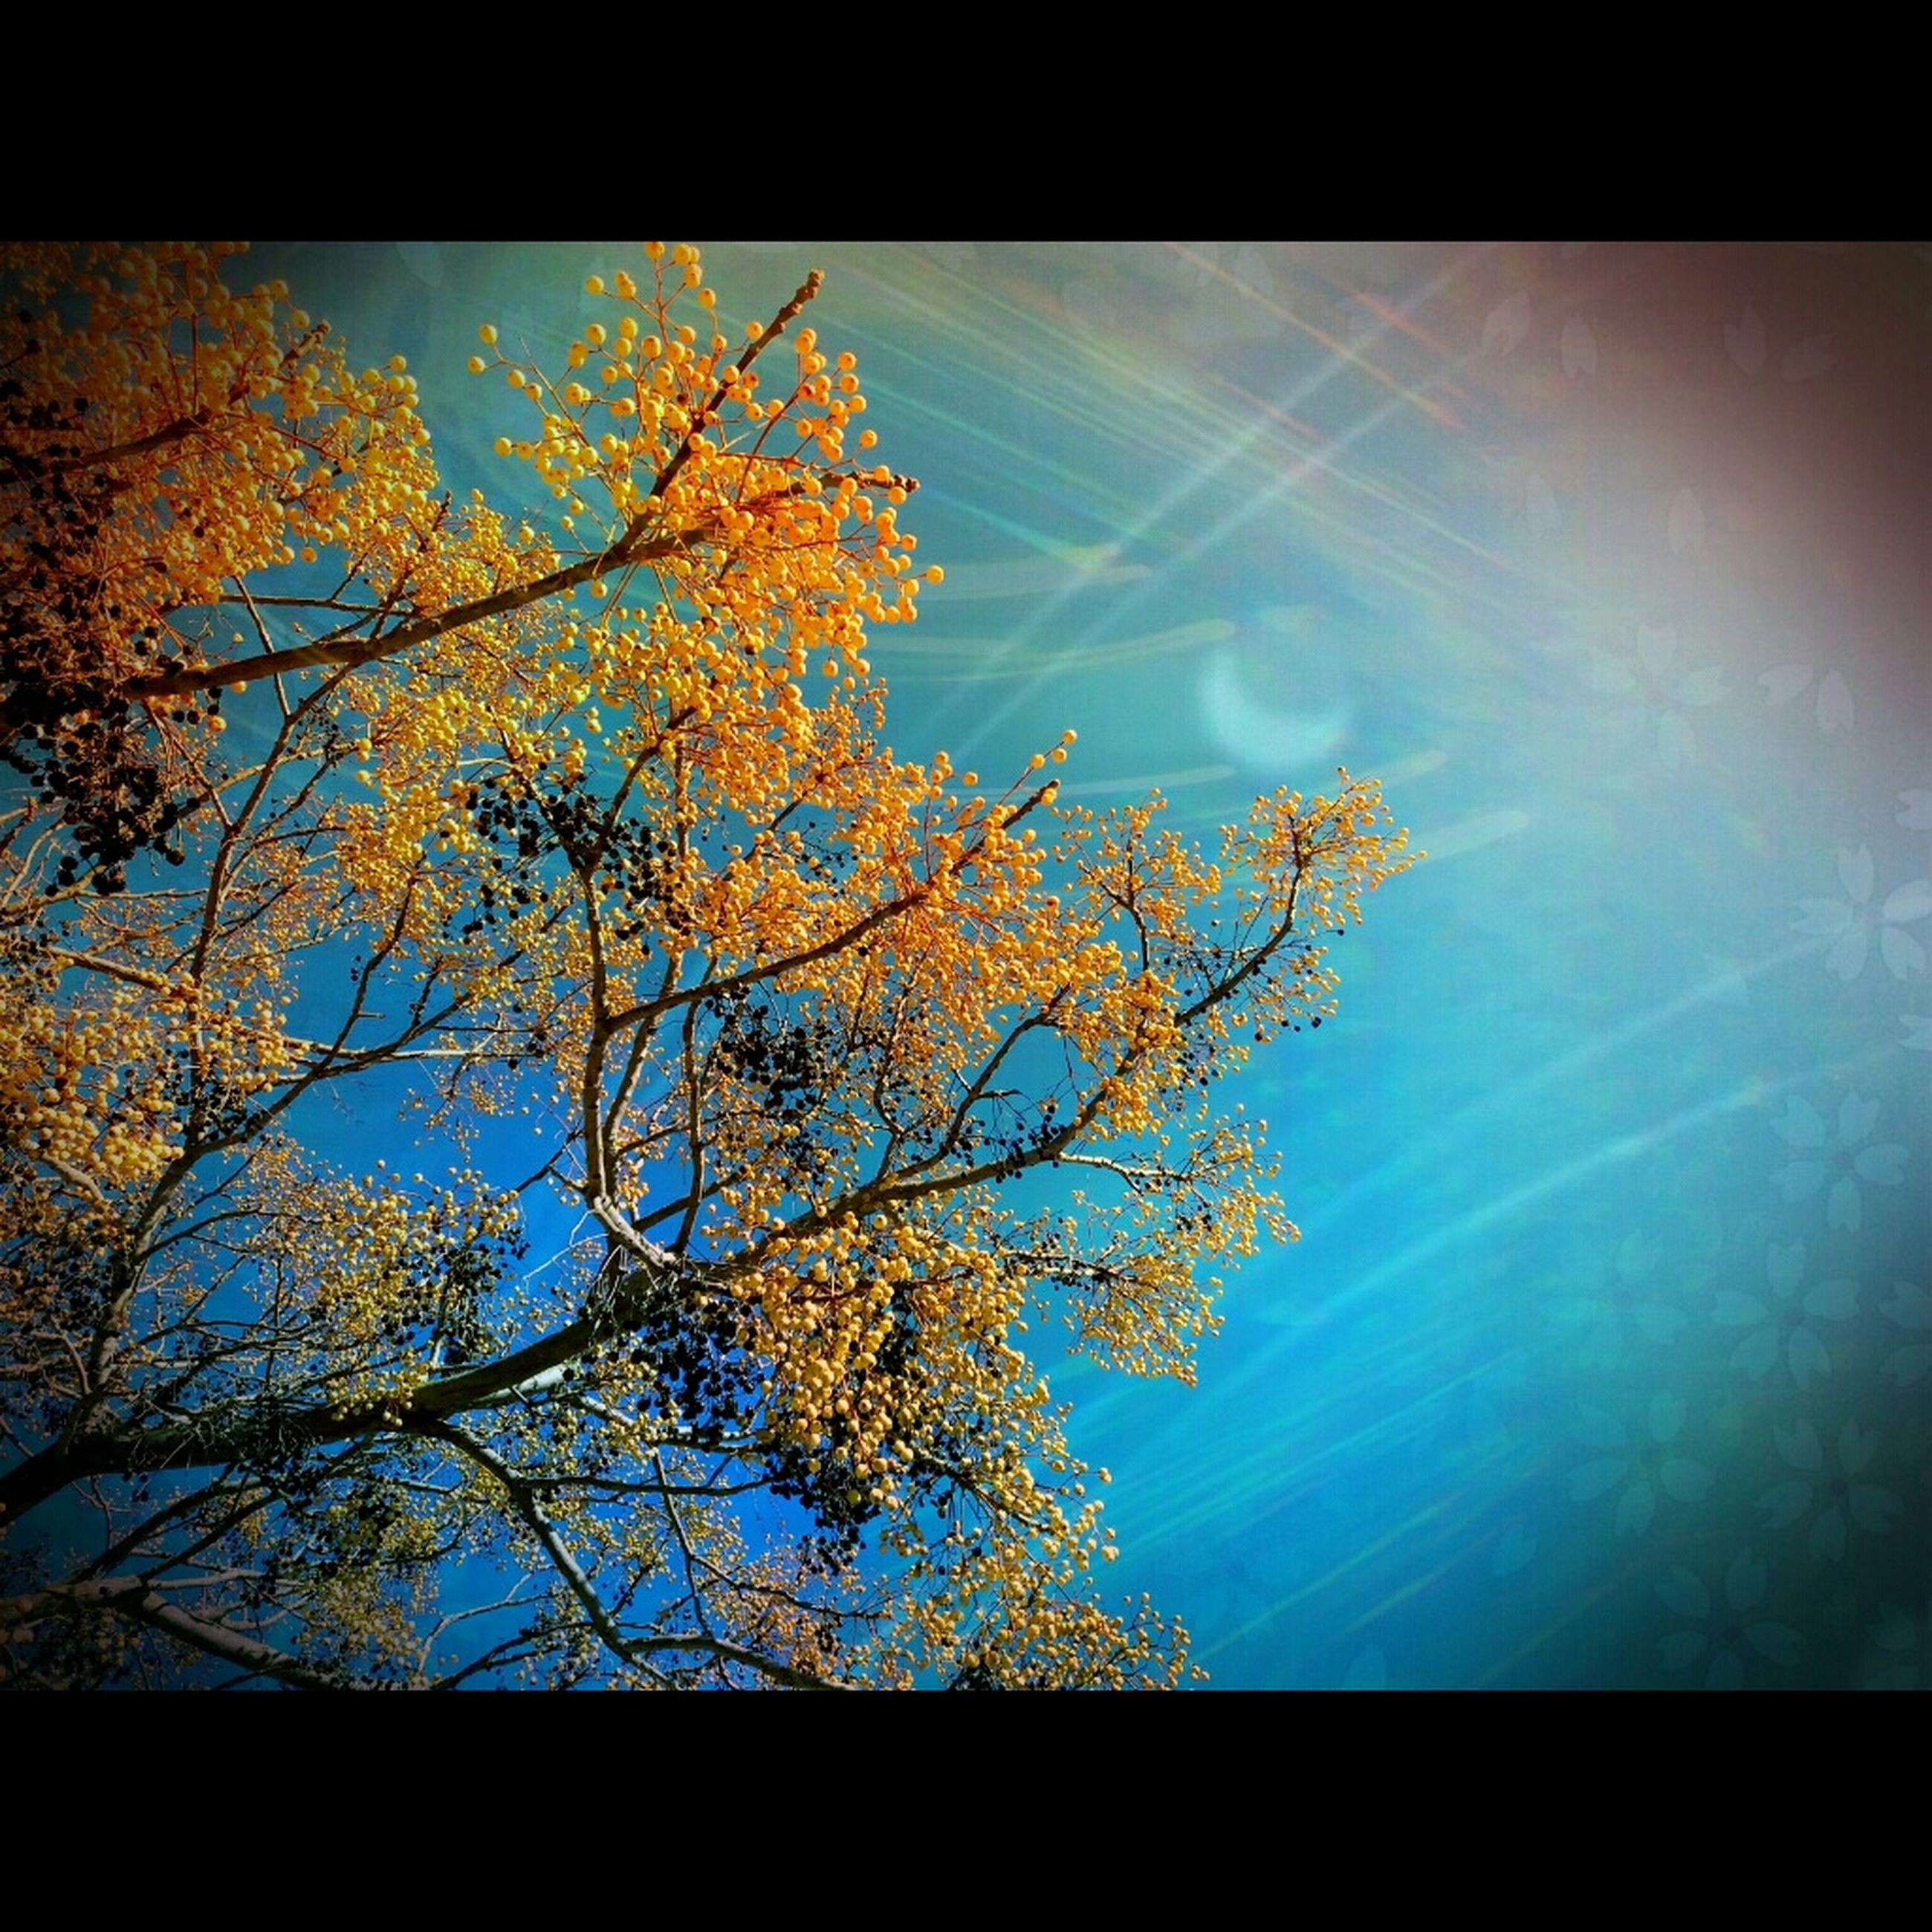 tree, autumn, nature, change, low angle view, sky, beauty in nature, growth, branch, no people, outdoors, day, close-up